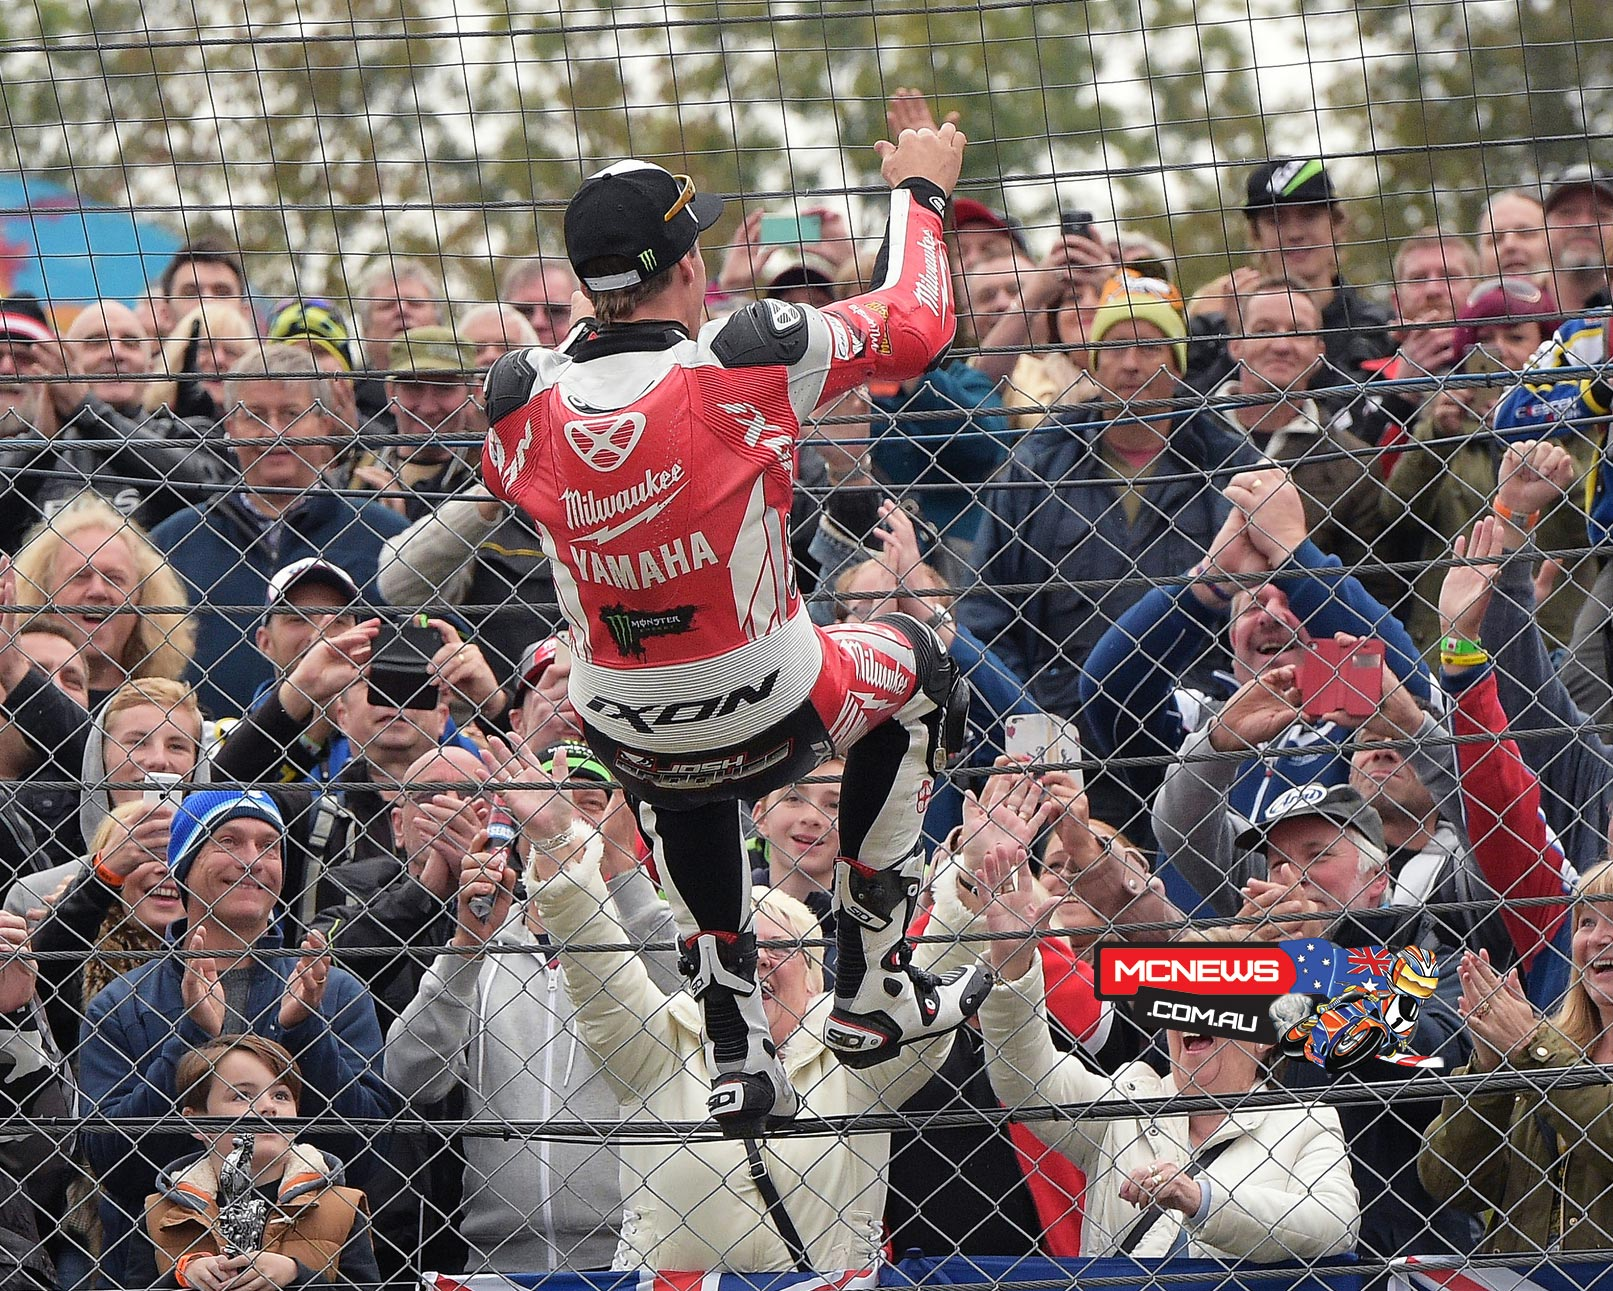 Josh Brookes BSB 2015 Champion